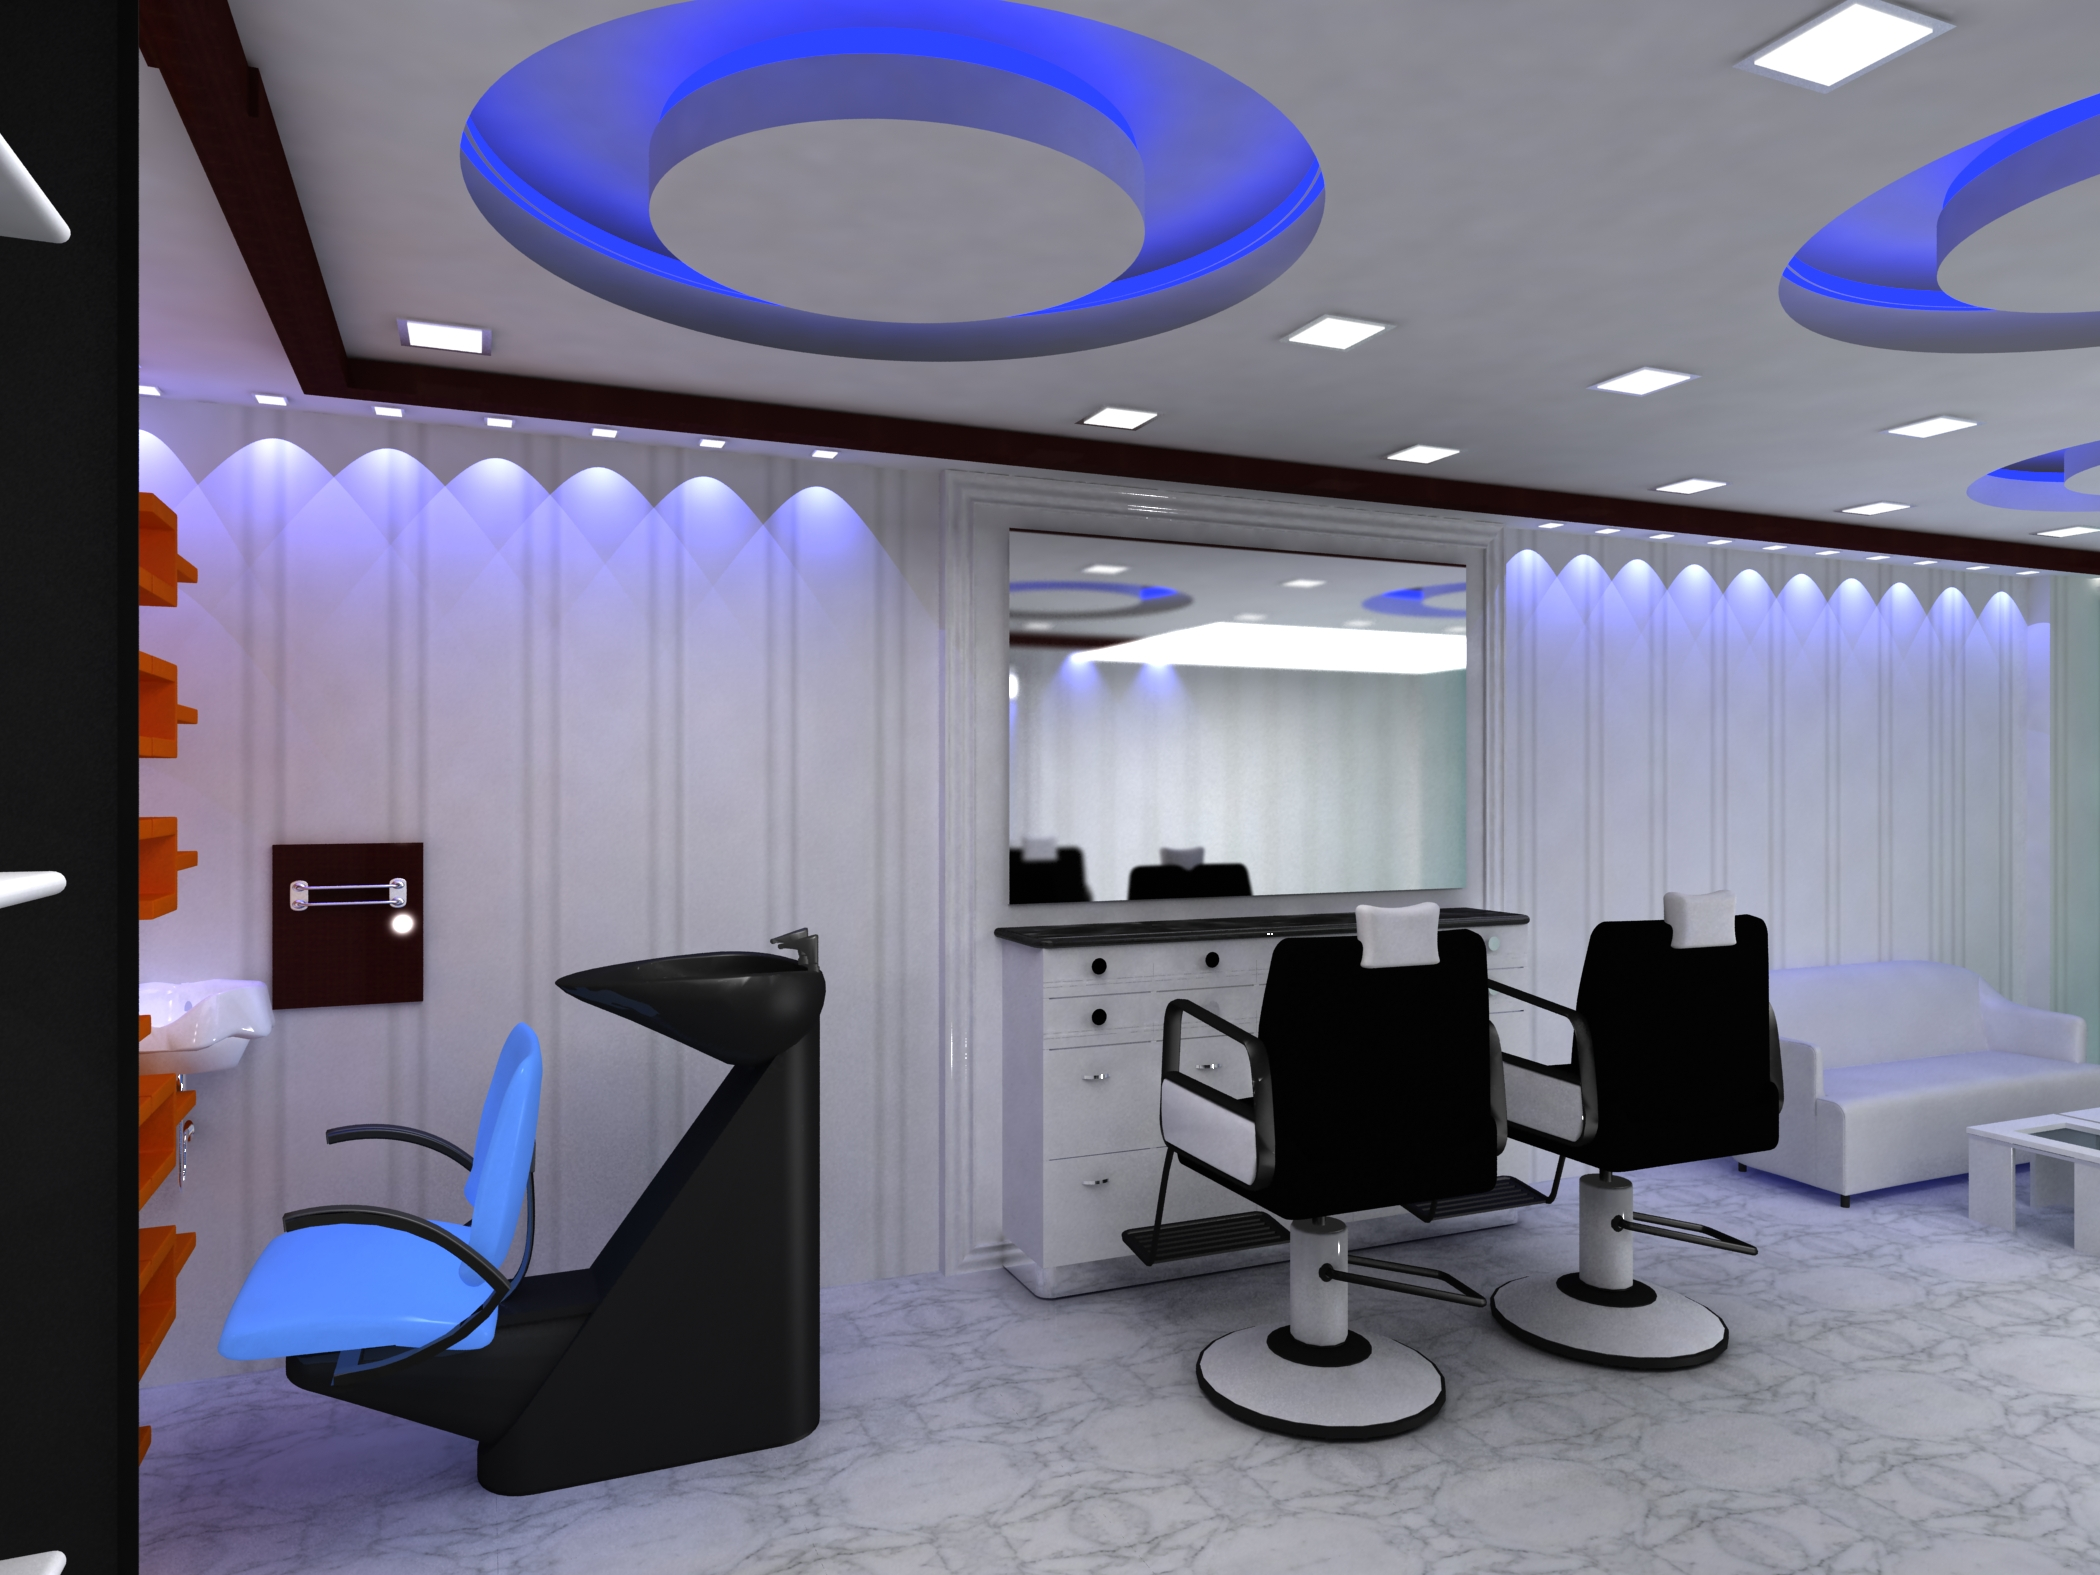 Designing Interiors for a Hair Salon | All About Interiors